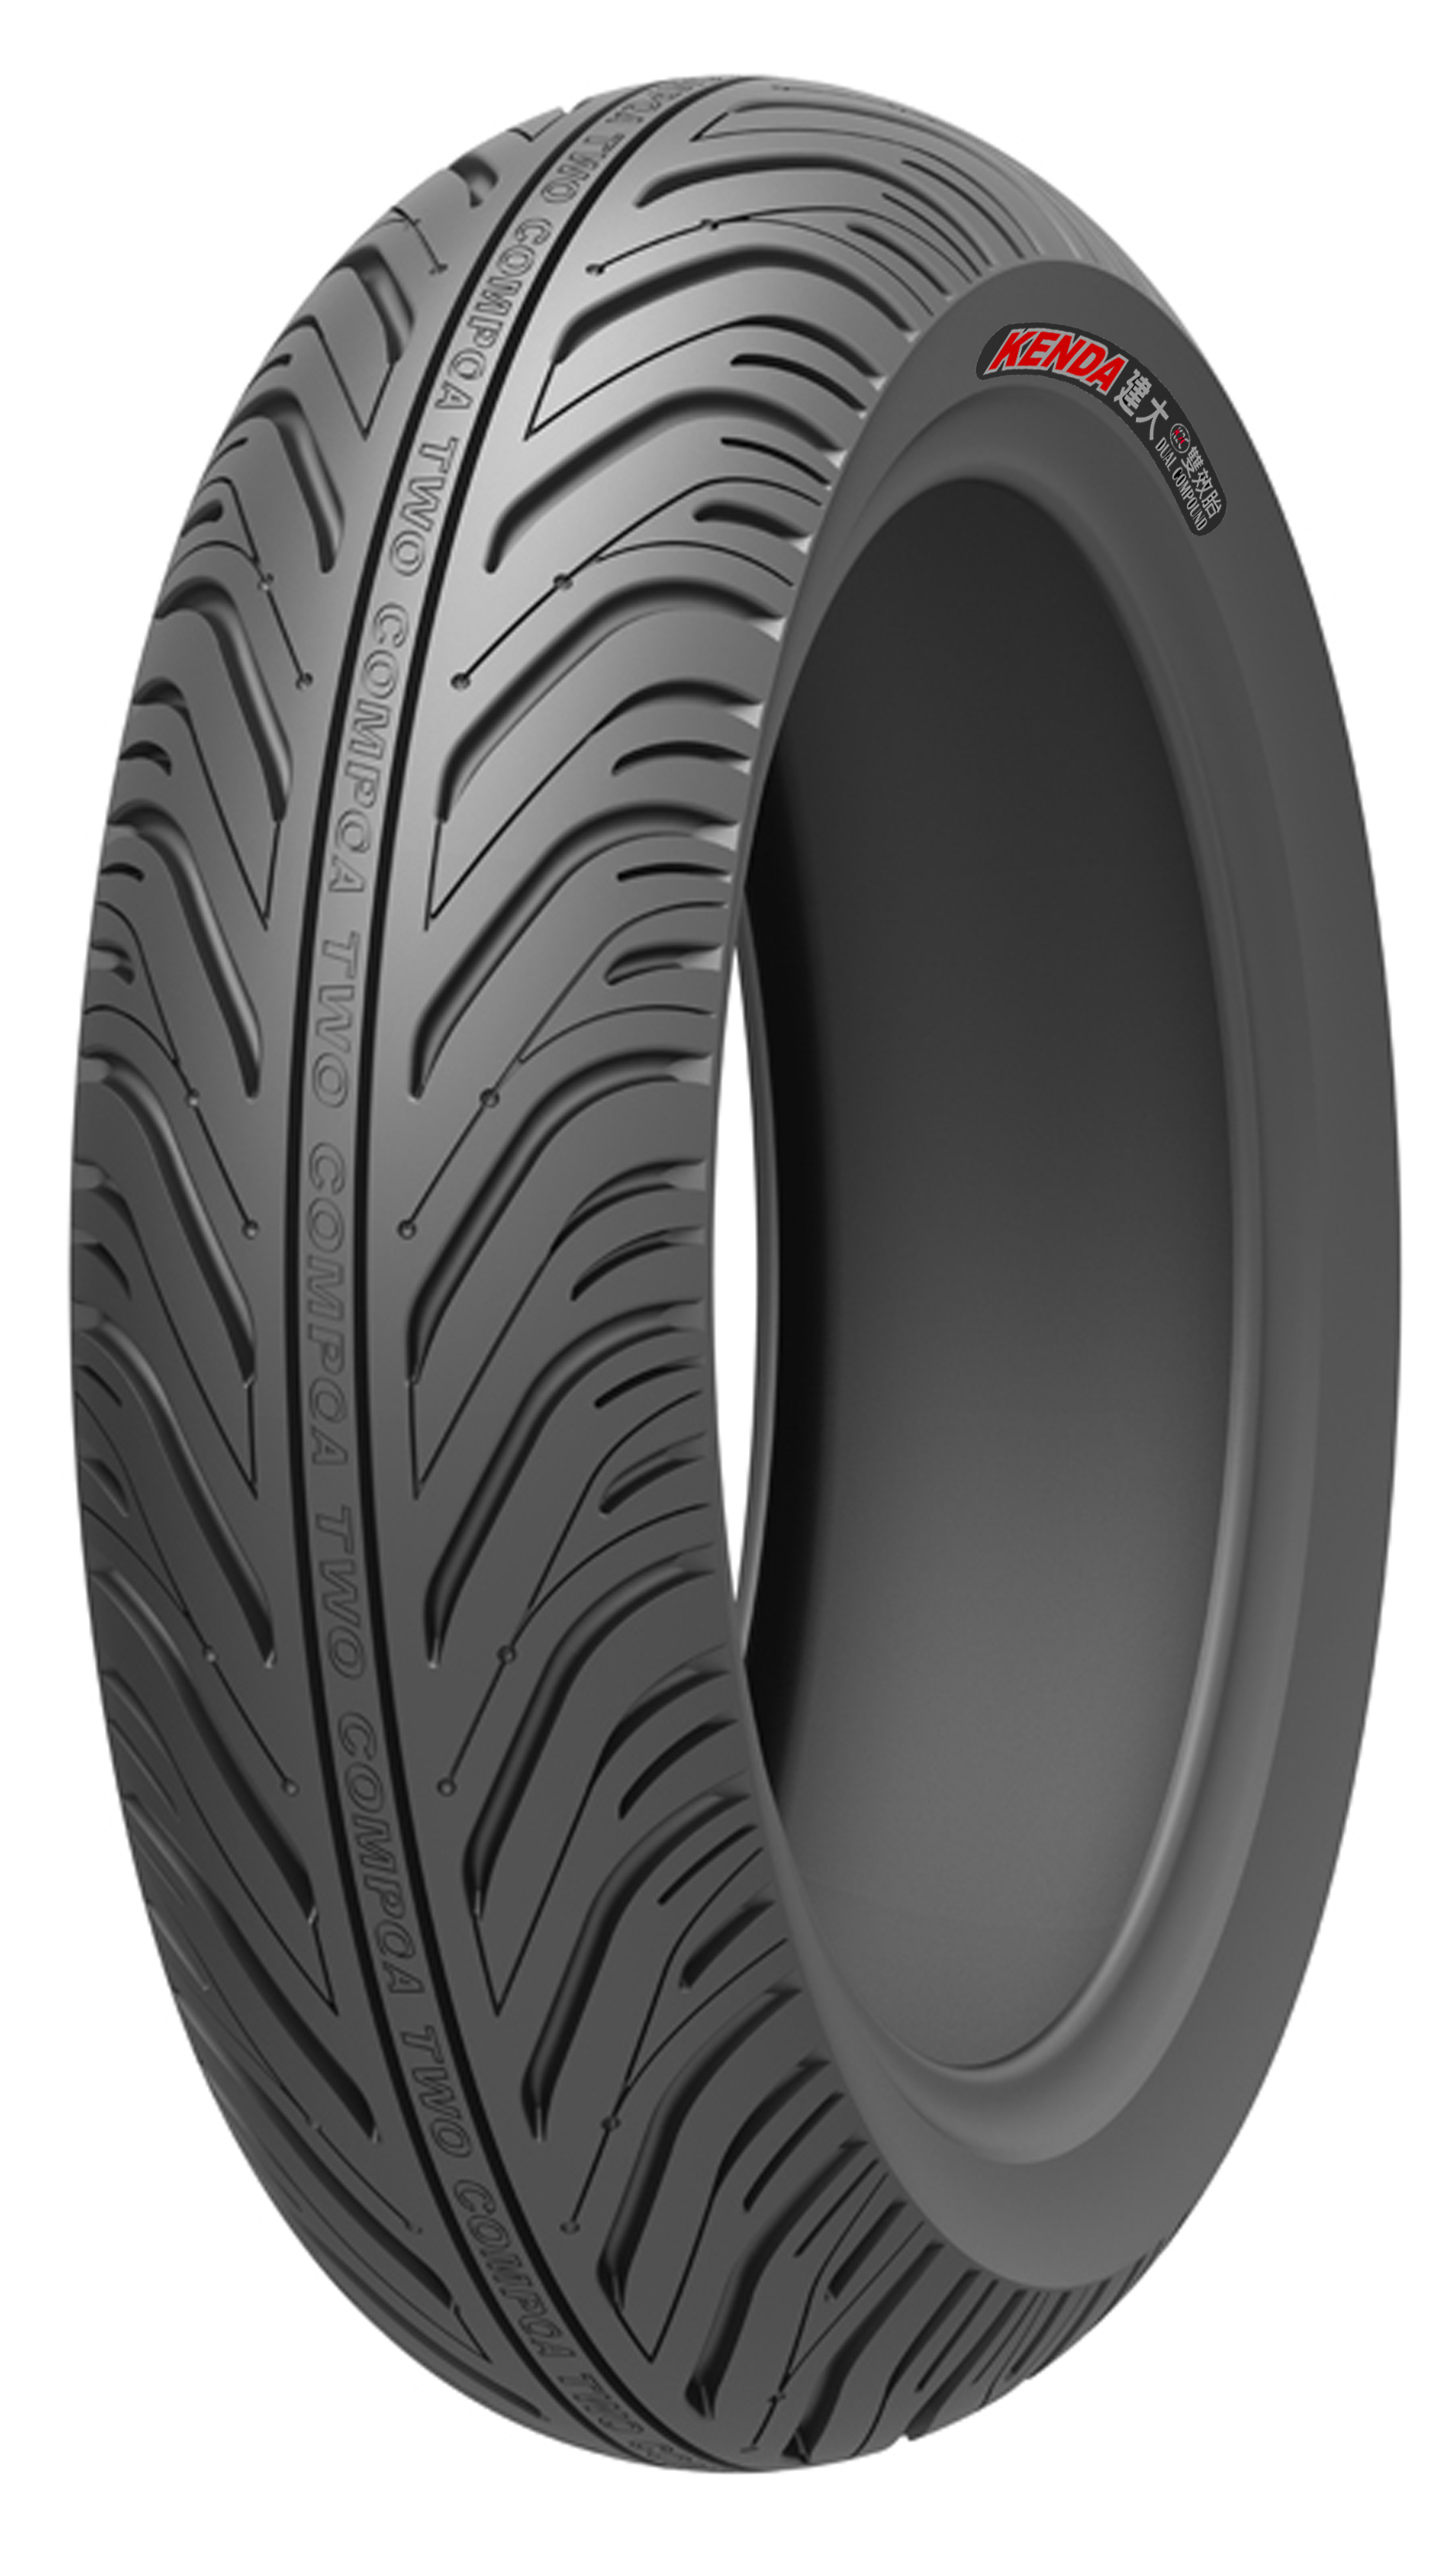 Dual compound Motorcycle Tire